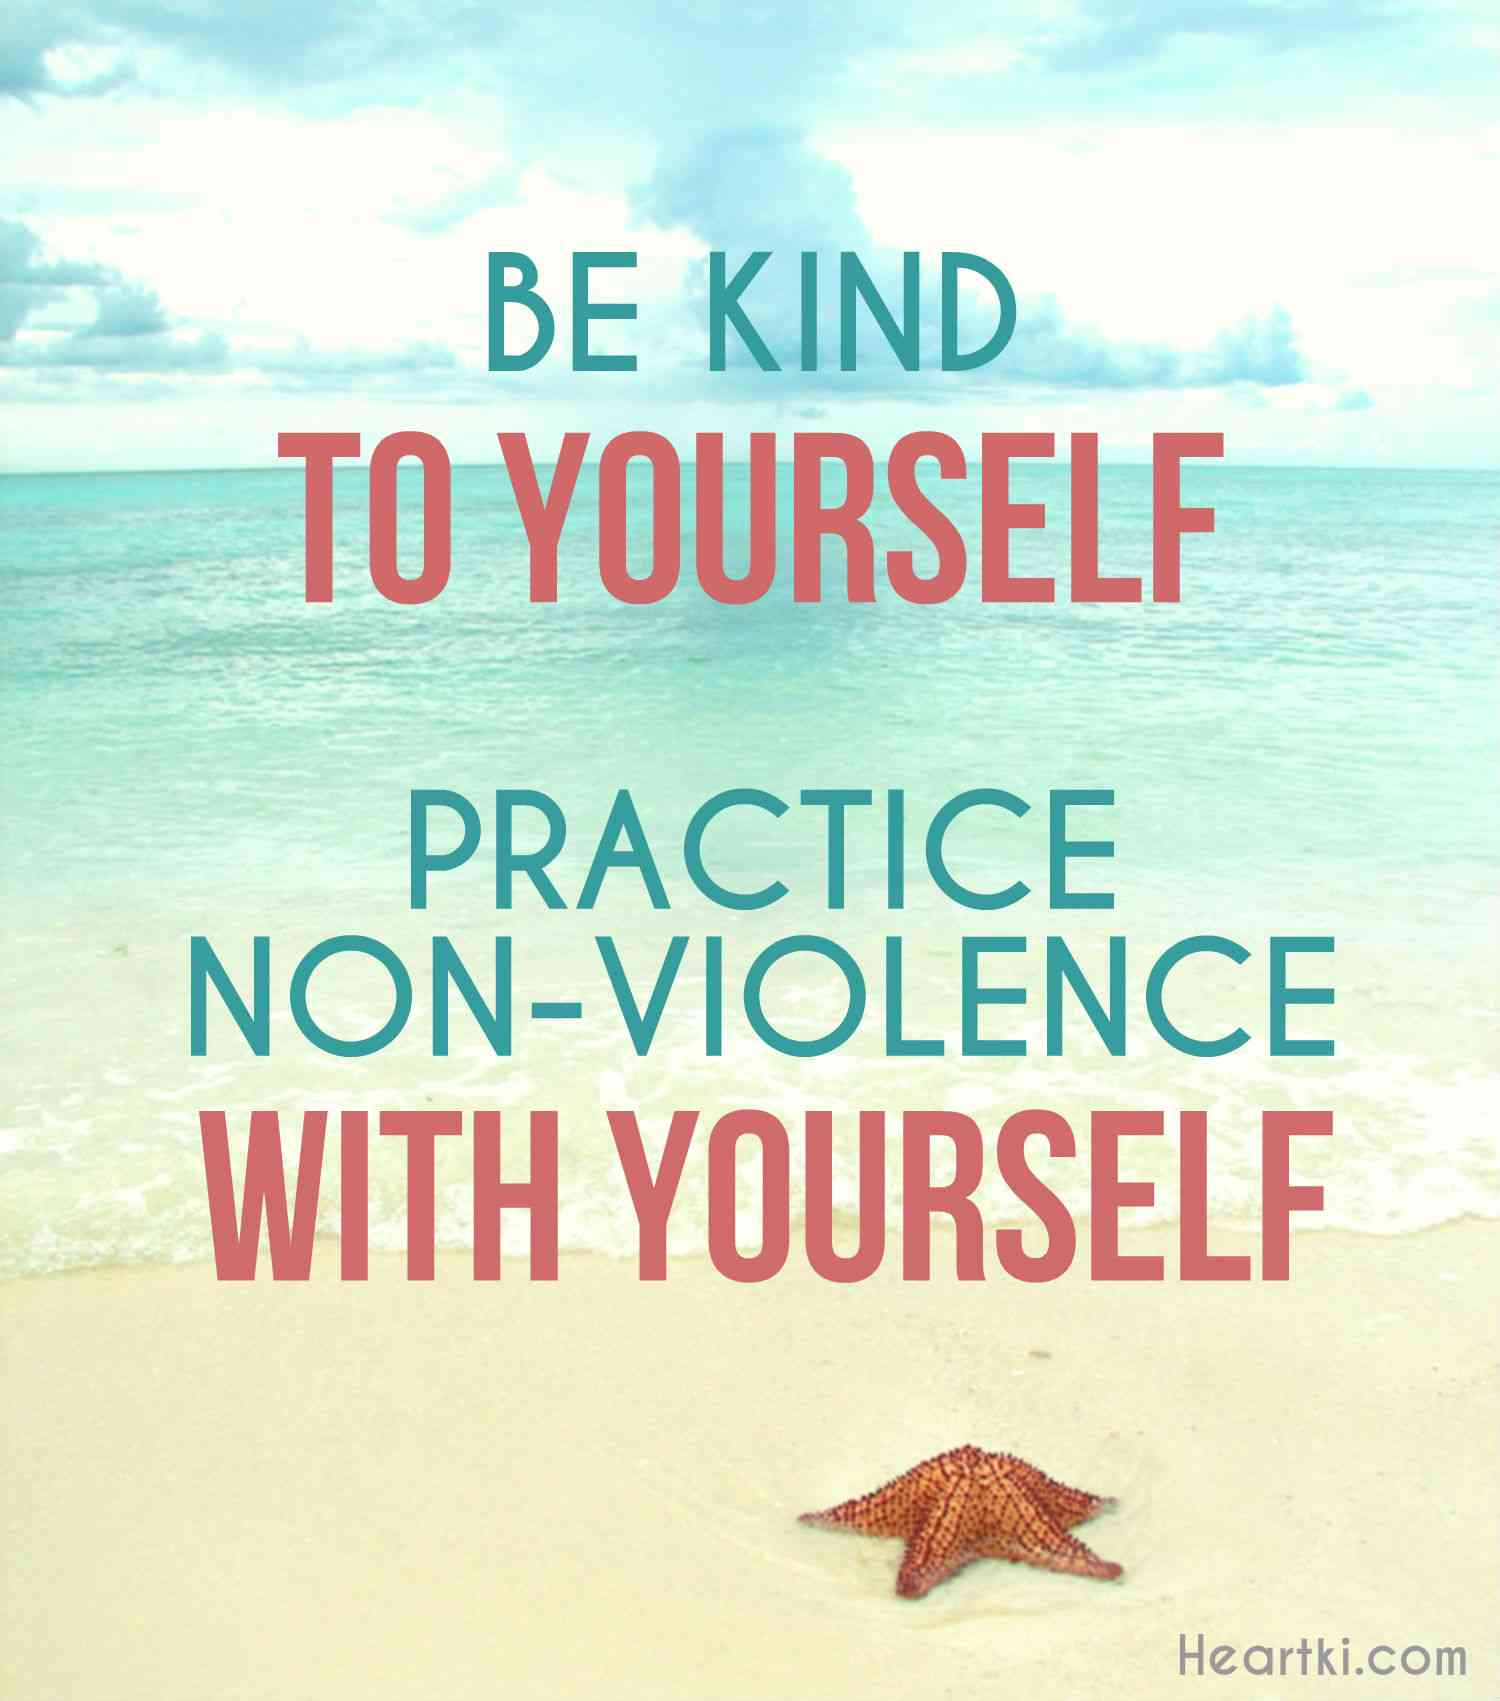 be kind to yourself, practice non-violence with yourself